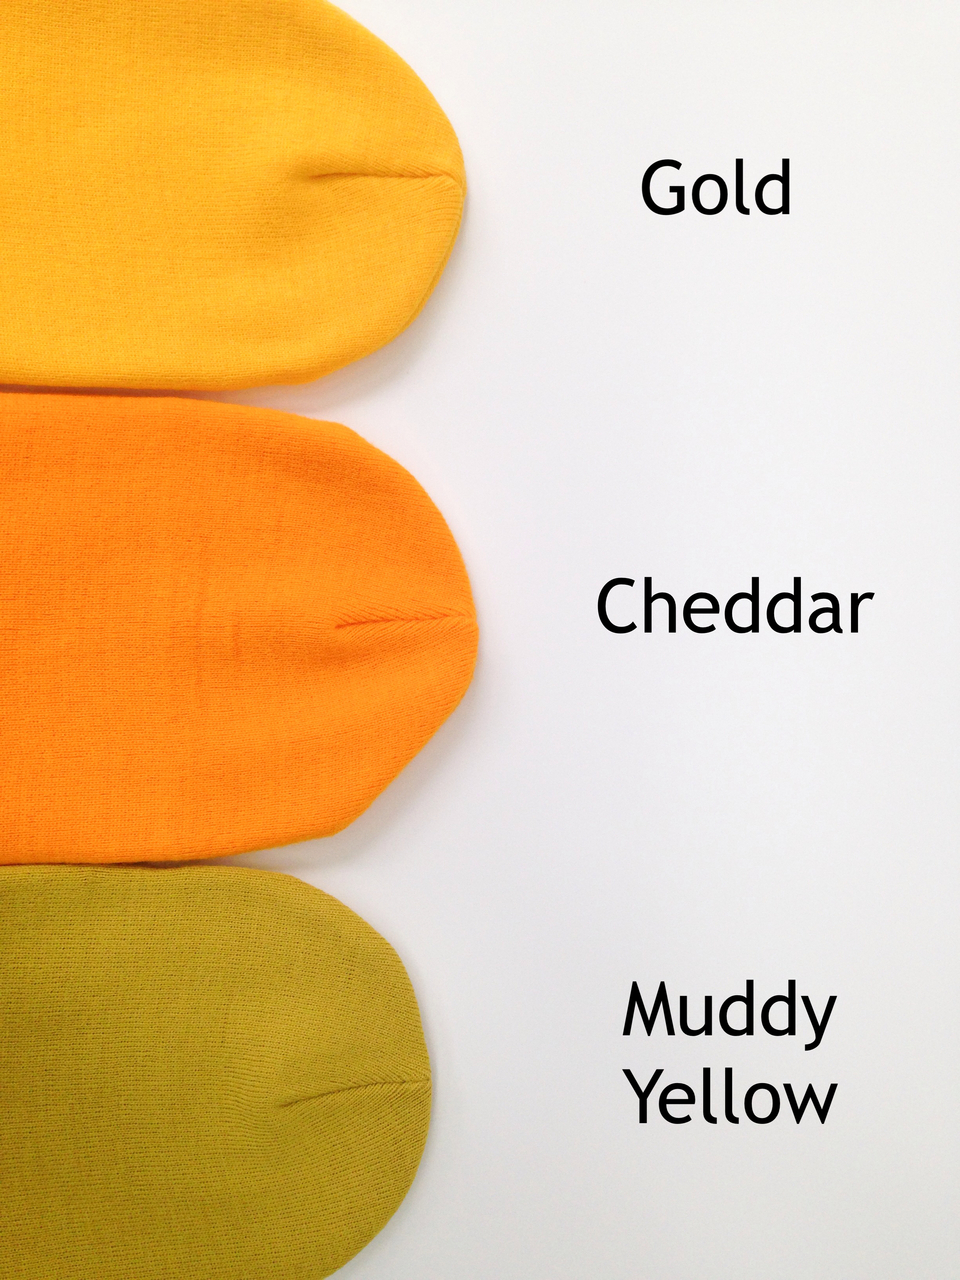 gold-vs-cheddar-vs-muddy-yellow-12727.jpg